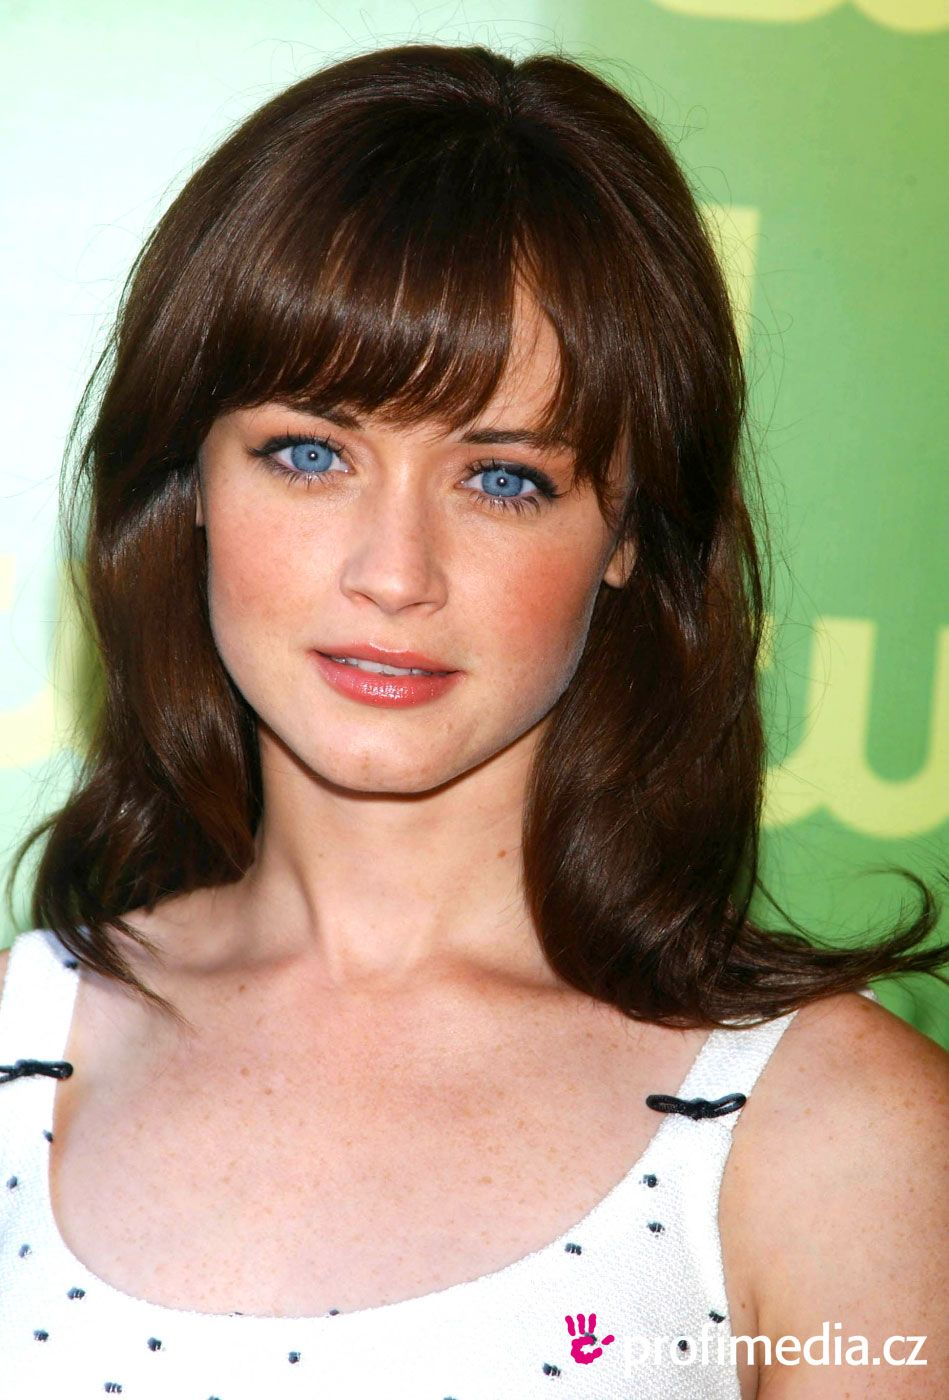 Alexis Bledel Had Big Blue Eyes And Dark Hair Before Zooey